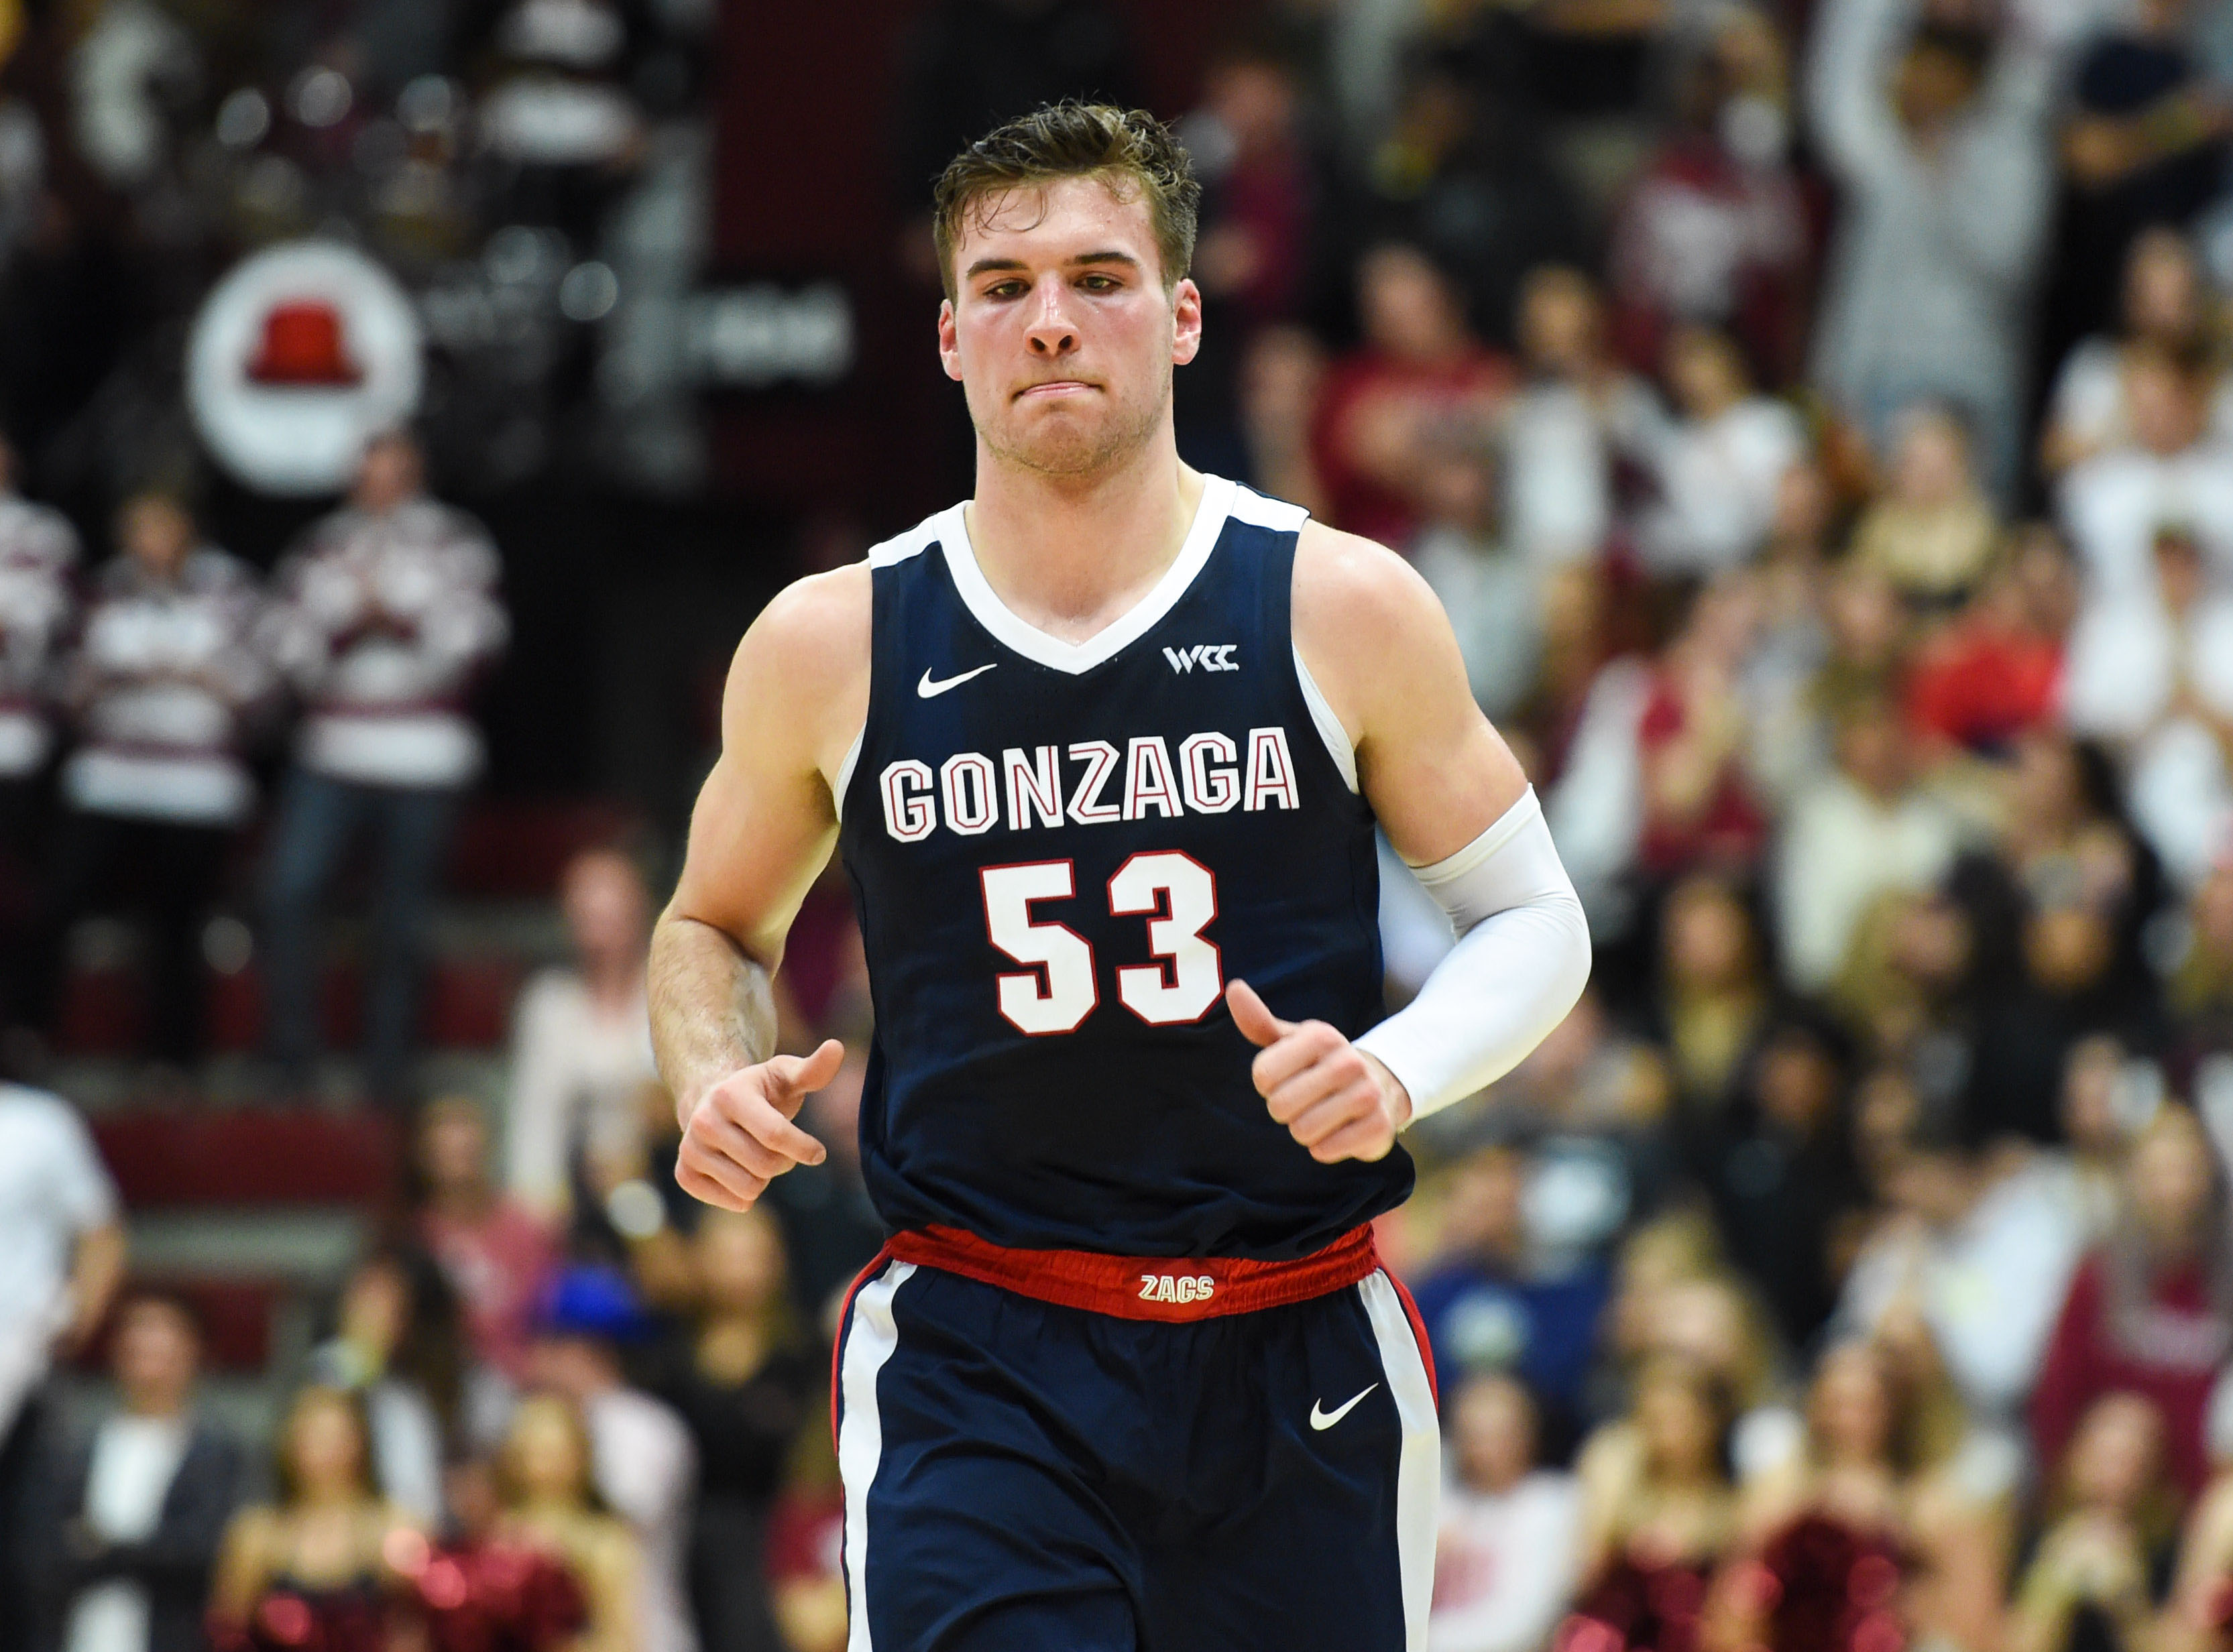 Jan 30, 2020; Santa Clara, California, USA; Gonzaga Bulldogs forward Corey Kispert (53) during the first half against the Santa Clara Broncos at Leavey Center. Mandatory Credit: